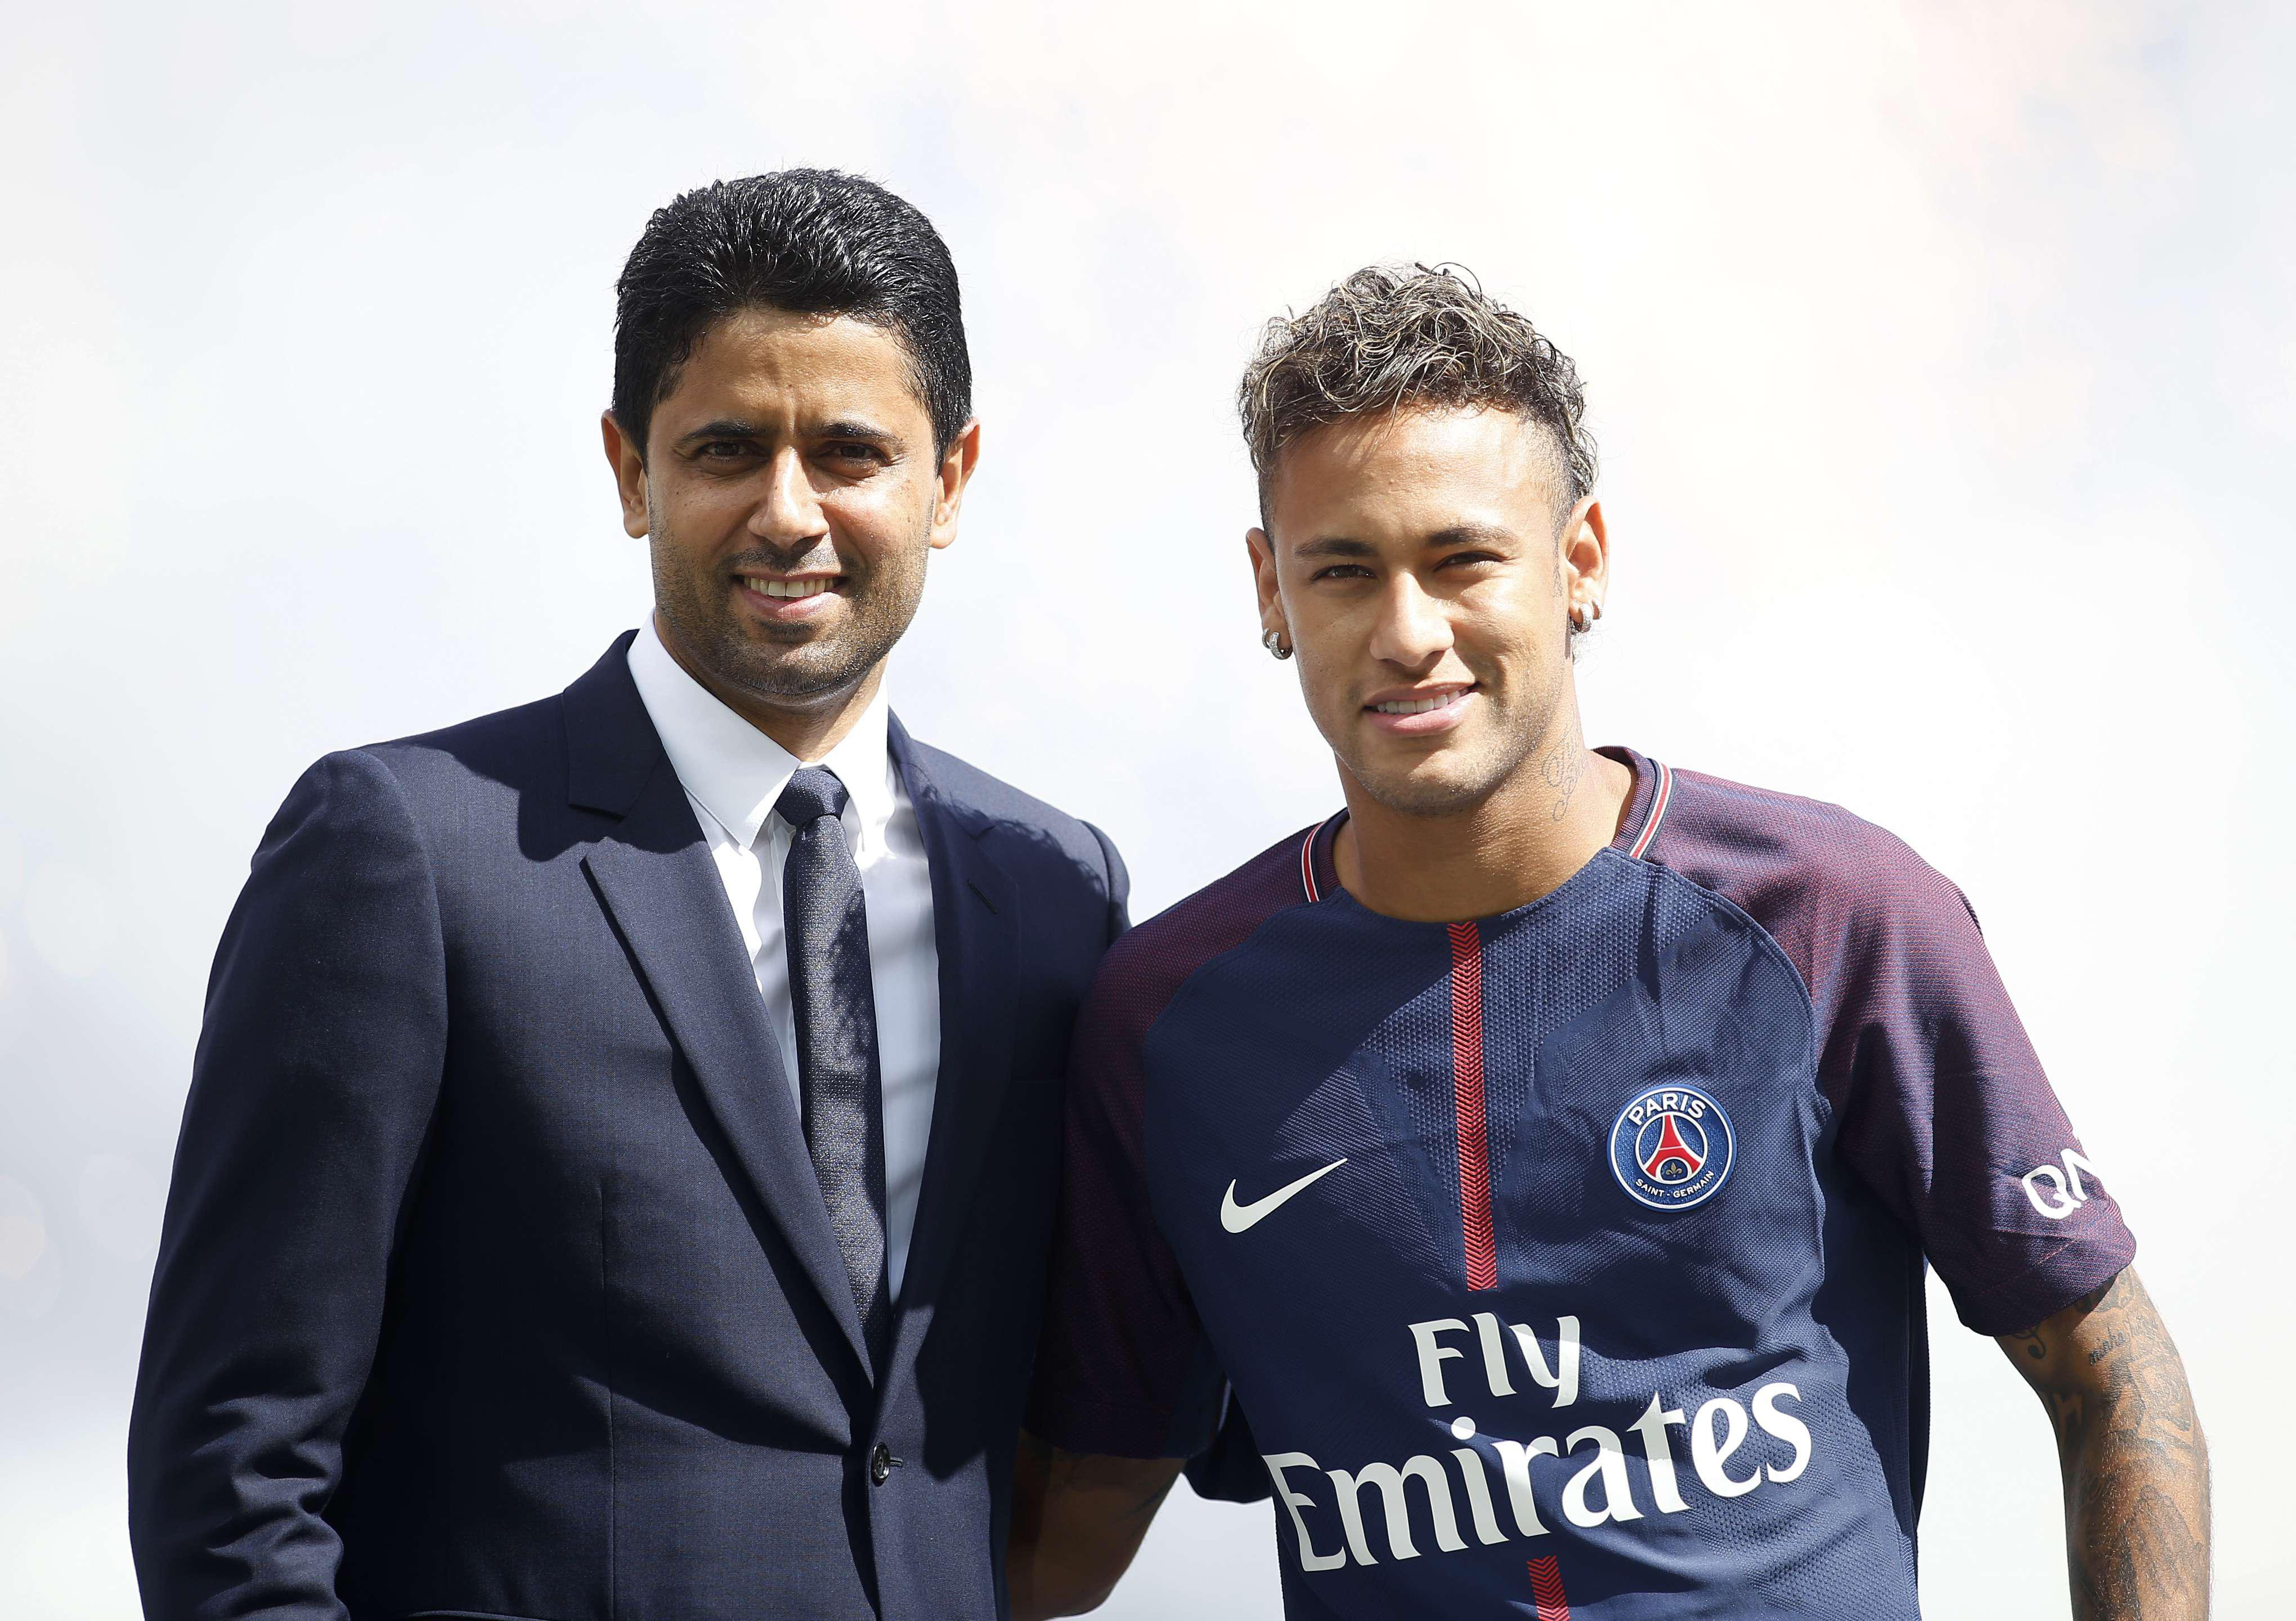 PSG's signing of Neymar could see them fall foul of Uefa's FFP regulations